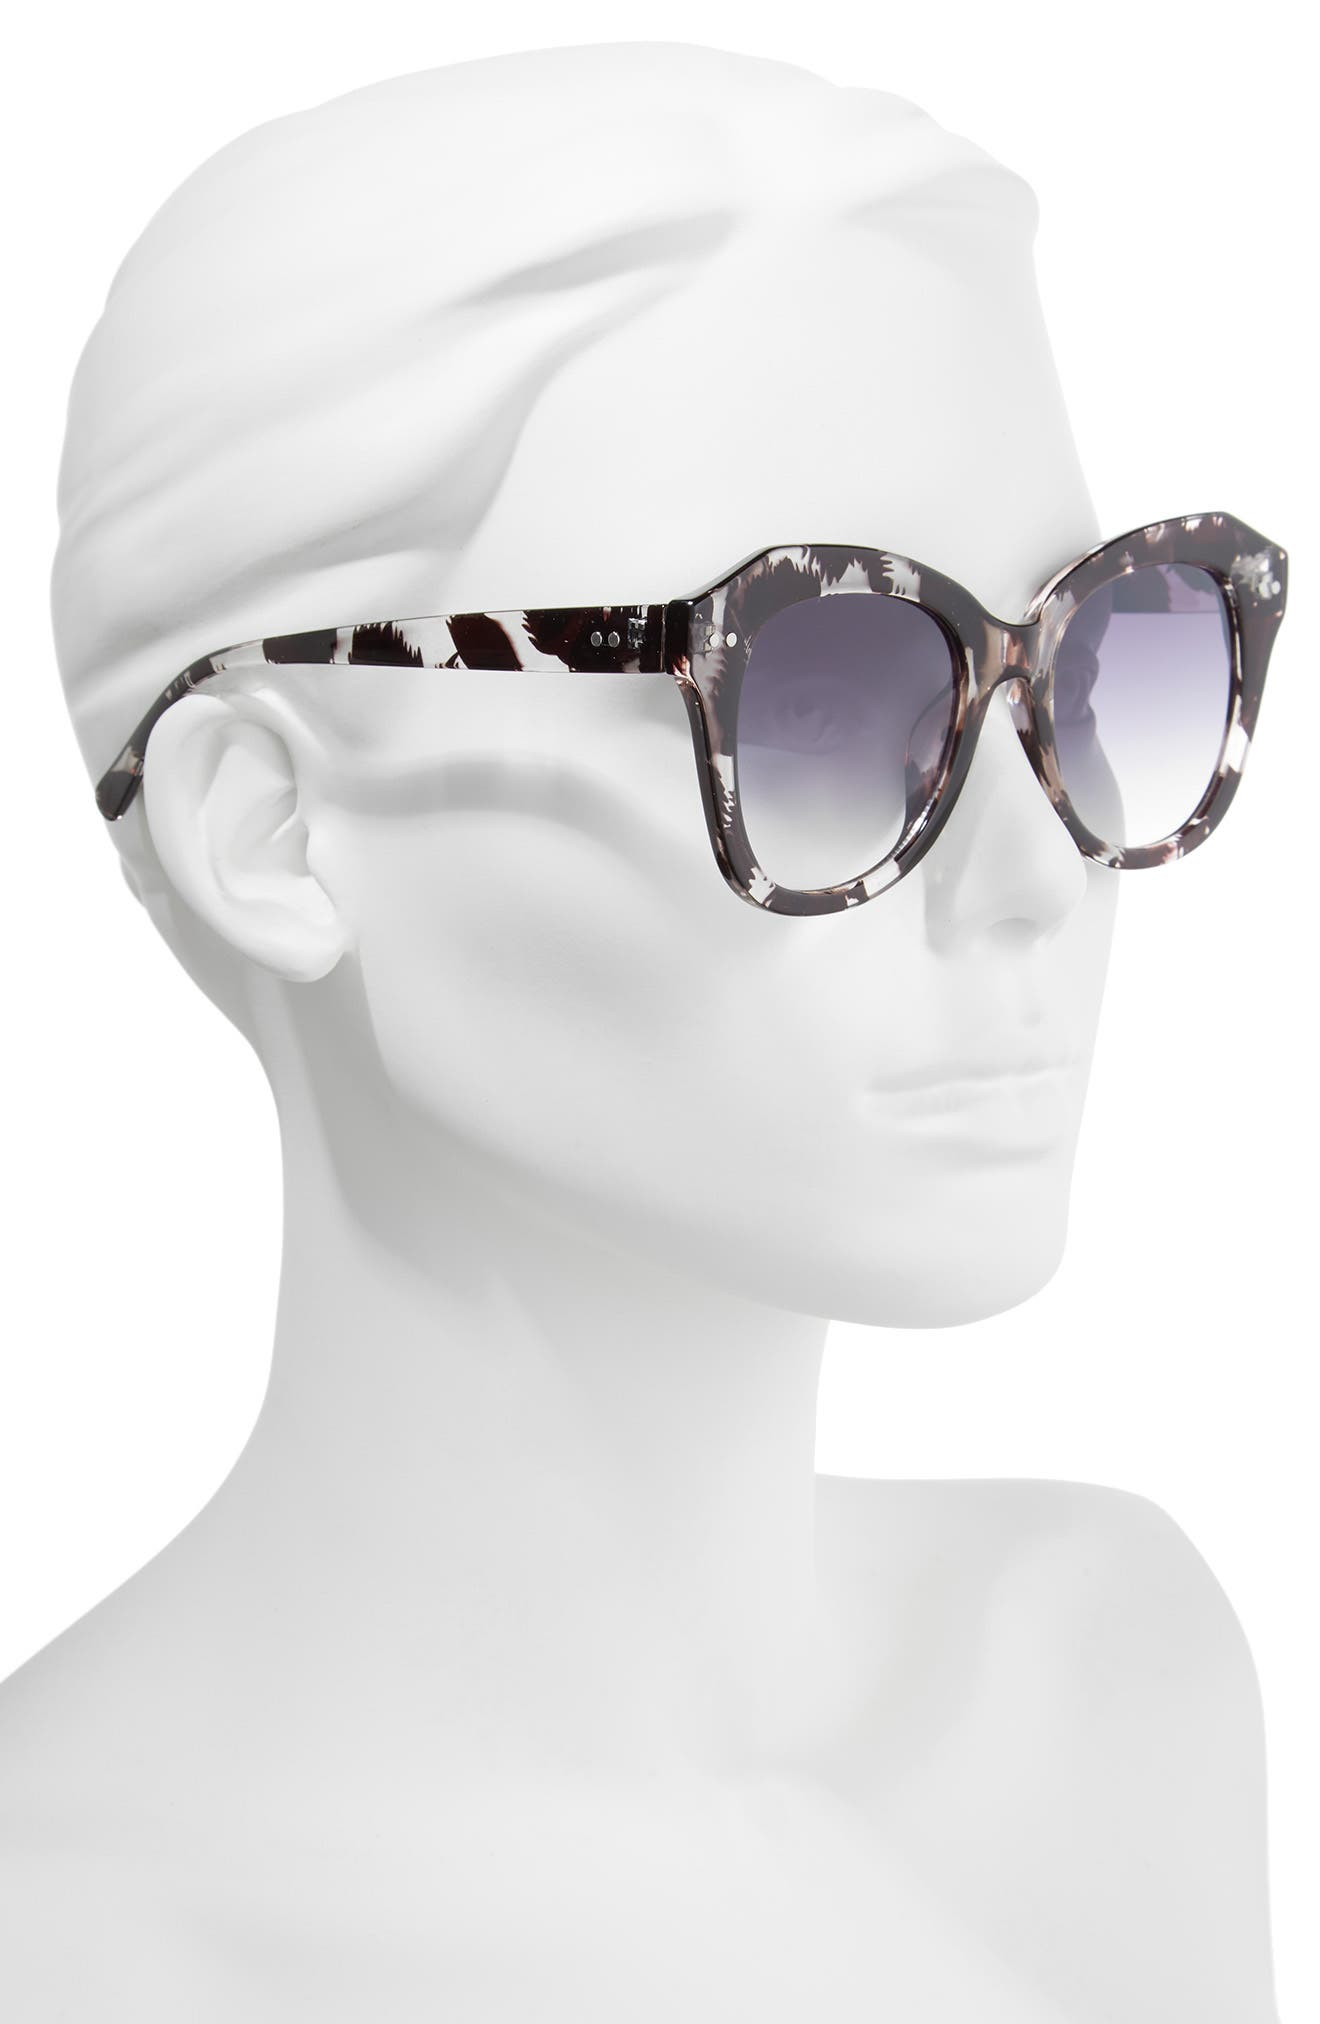 Marbled Square Sunglasses,                             Alternate thumbnail 2, color,                             Black/ Clear